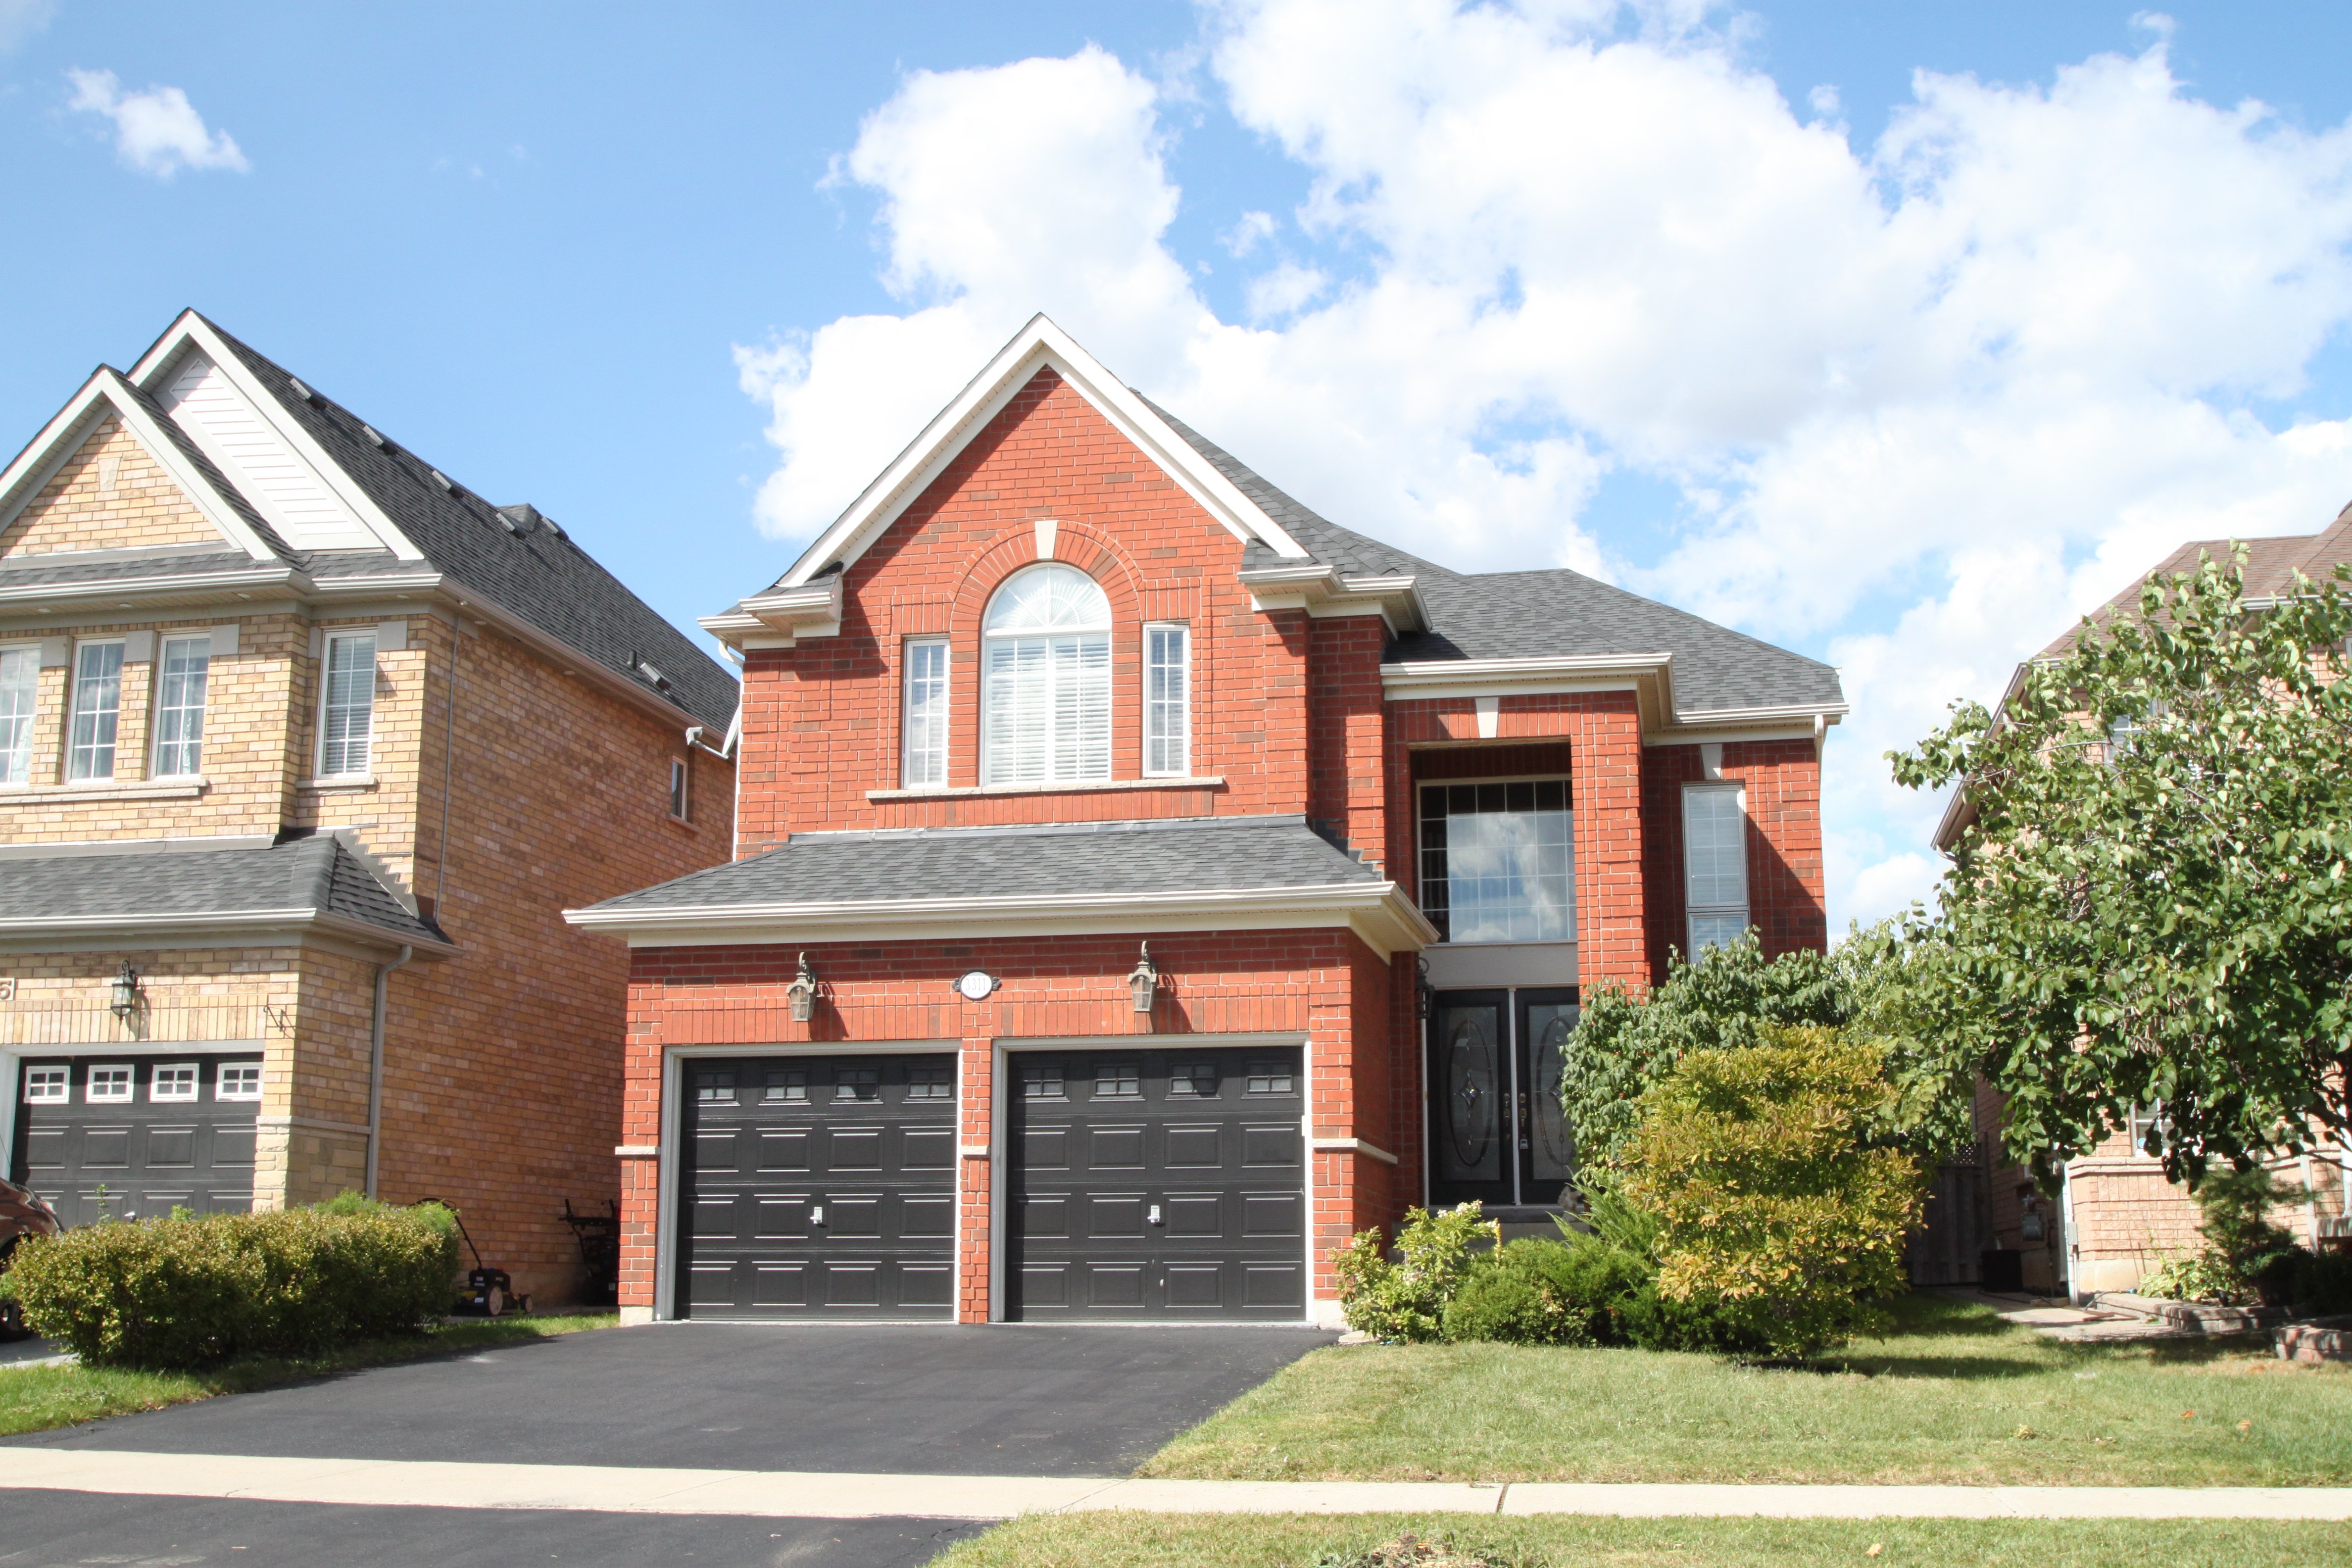 Marvelous Mississauga Detached Home For Sale Churchill Meadows 3311 Download Free Architecture Designs Embacsunscenecom